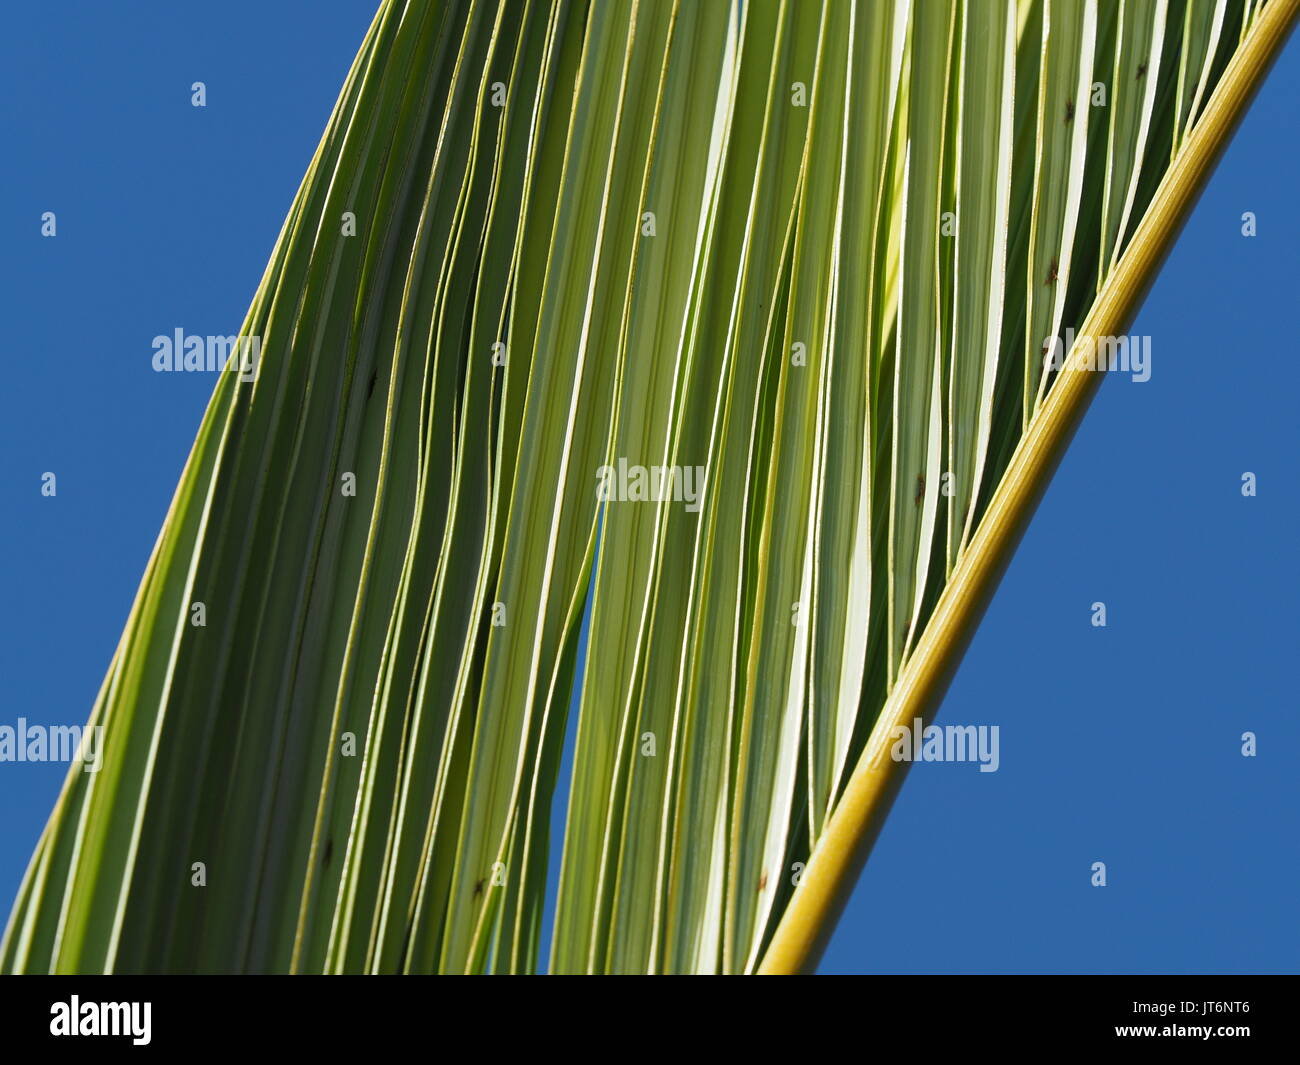 New palm fronds - Stock Image